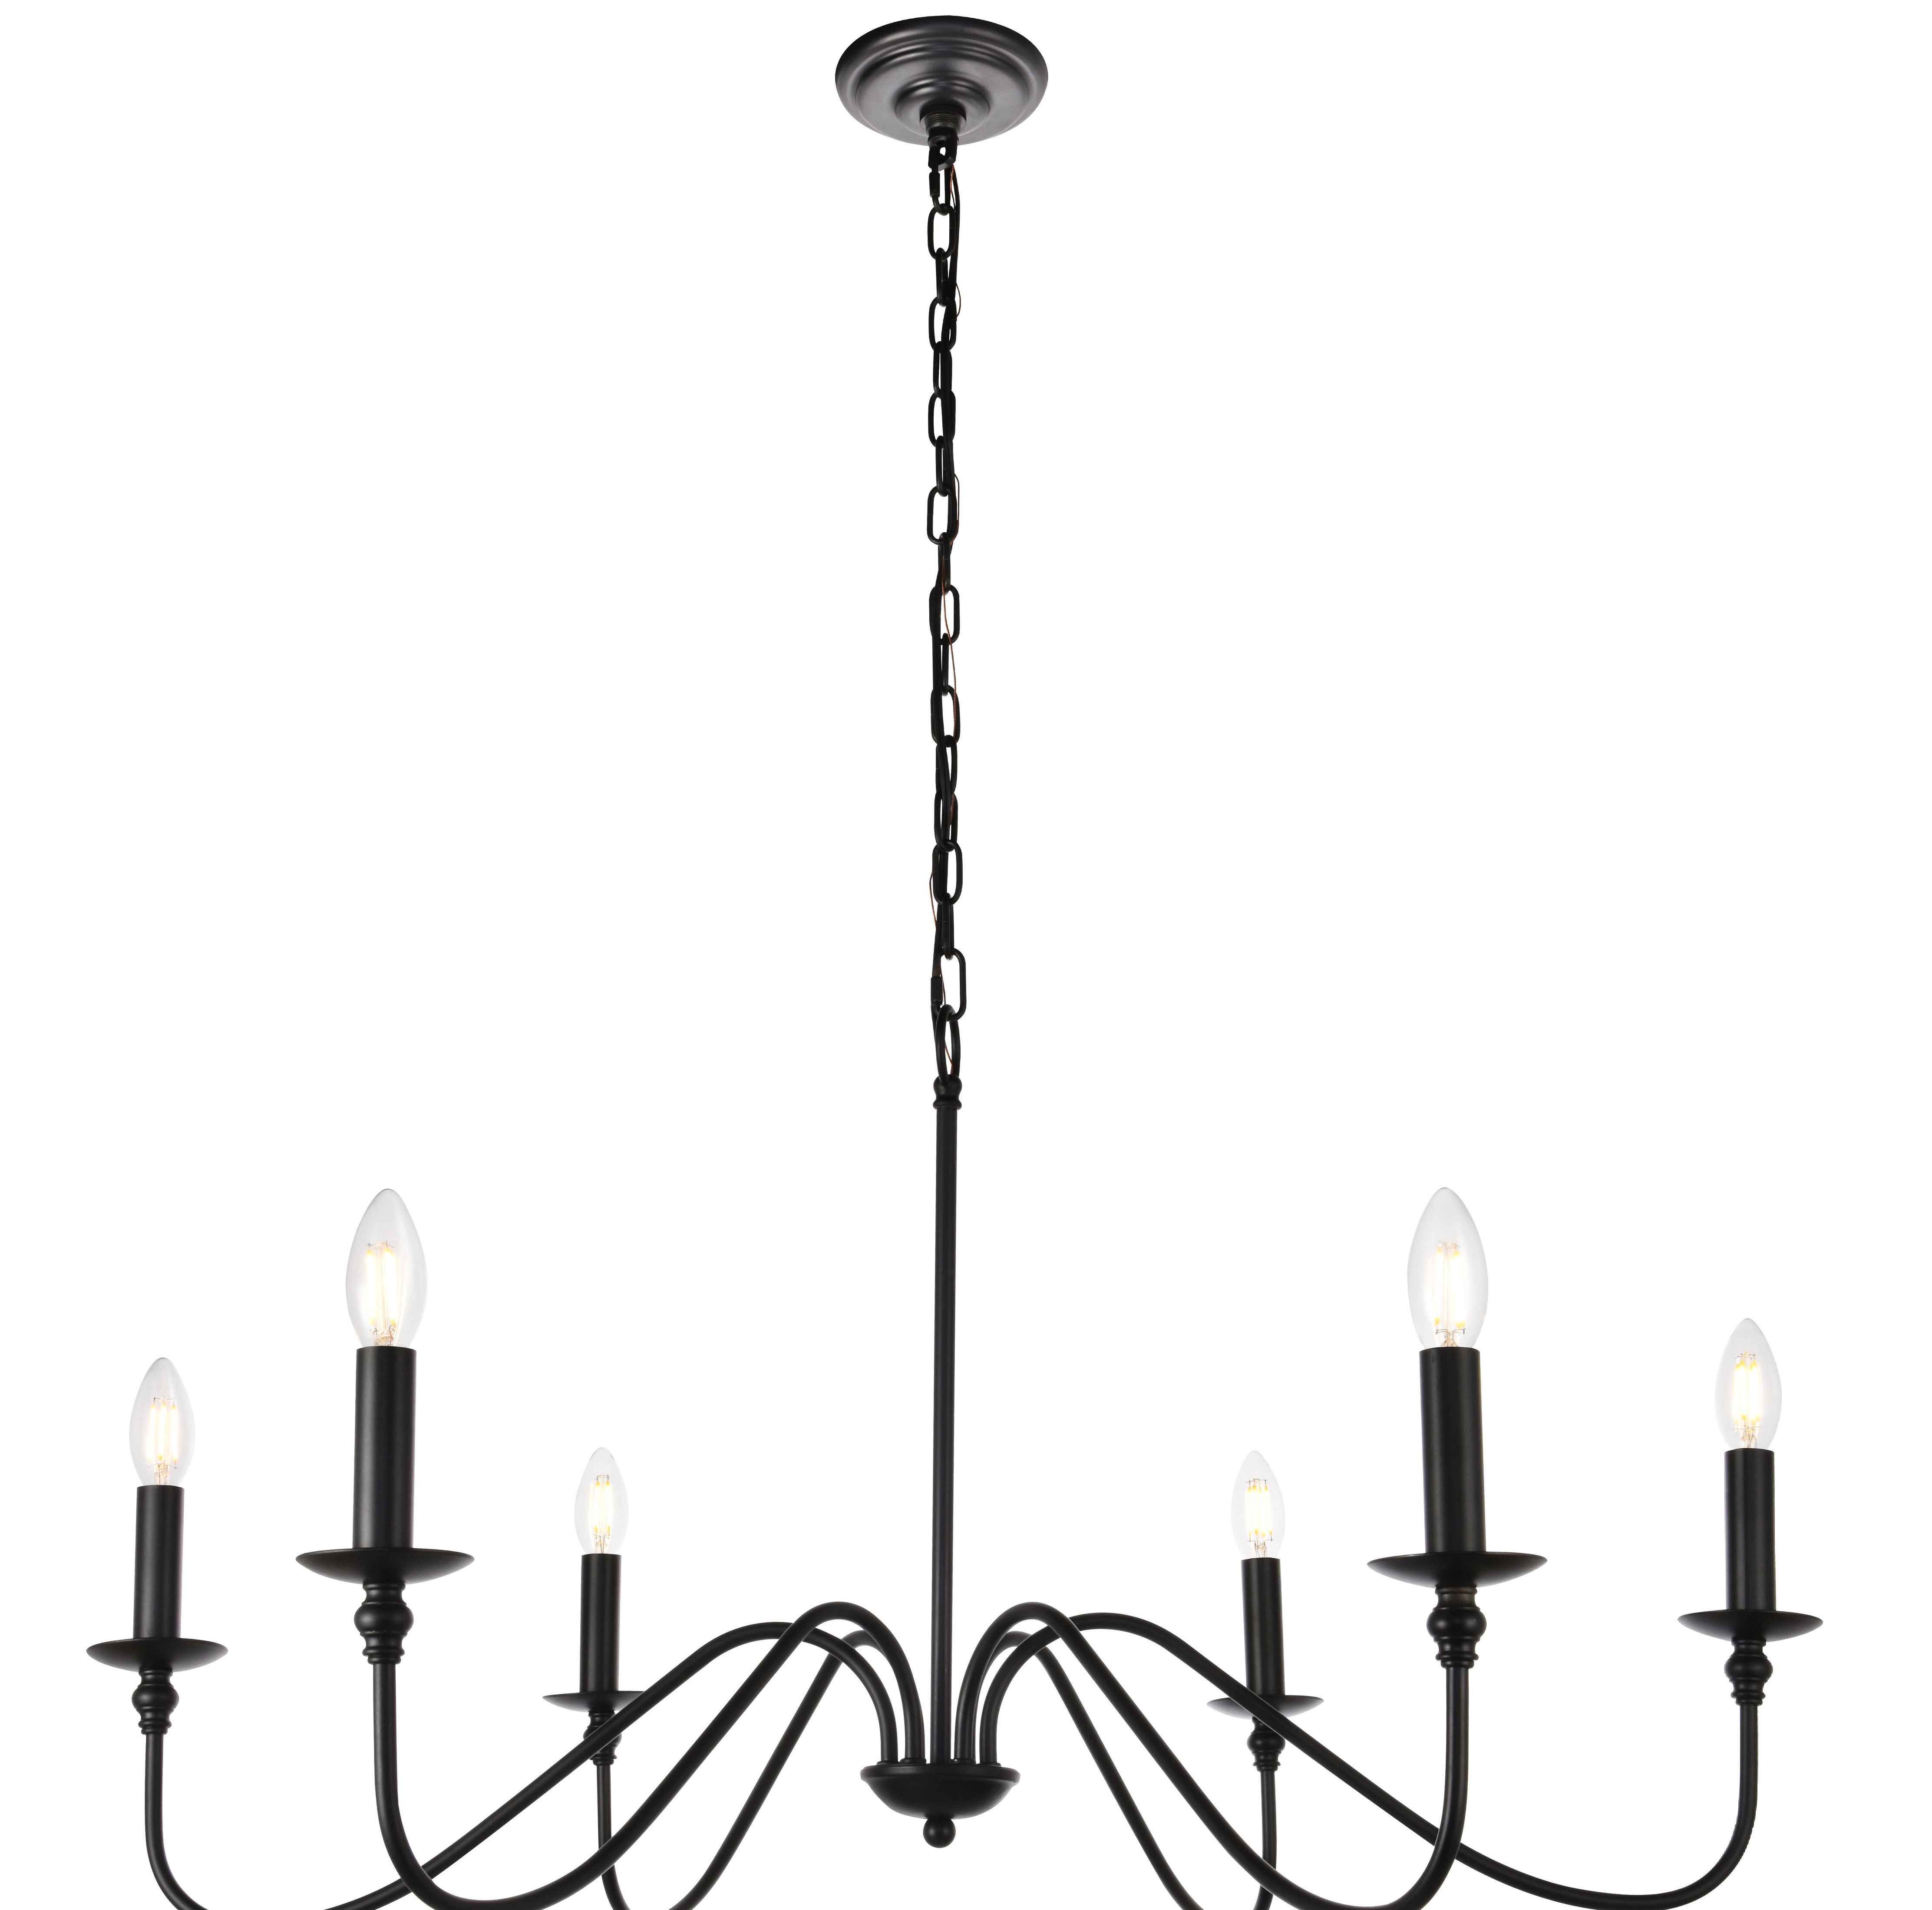 Hamza 6 Light Candle Style Chandelier With Regard To Most Recently Released Shaylee 6 Light Candle Style Chandeliers (View 6 of 20)